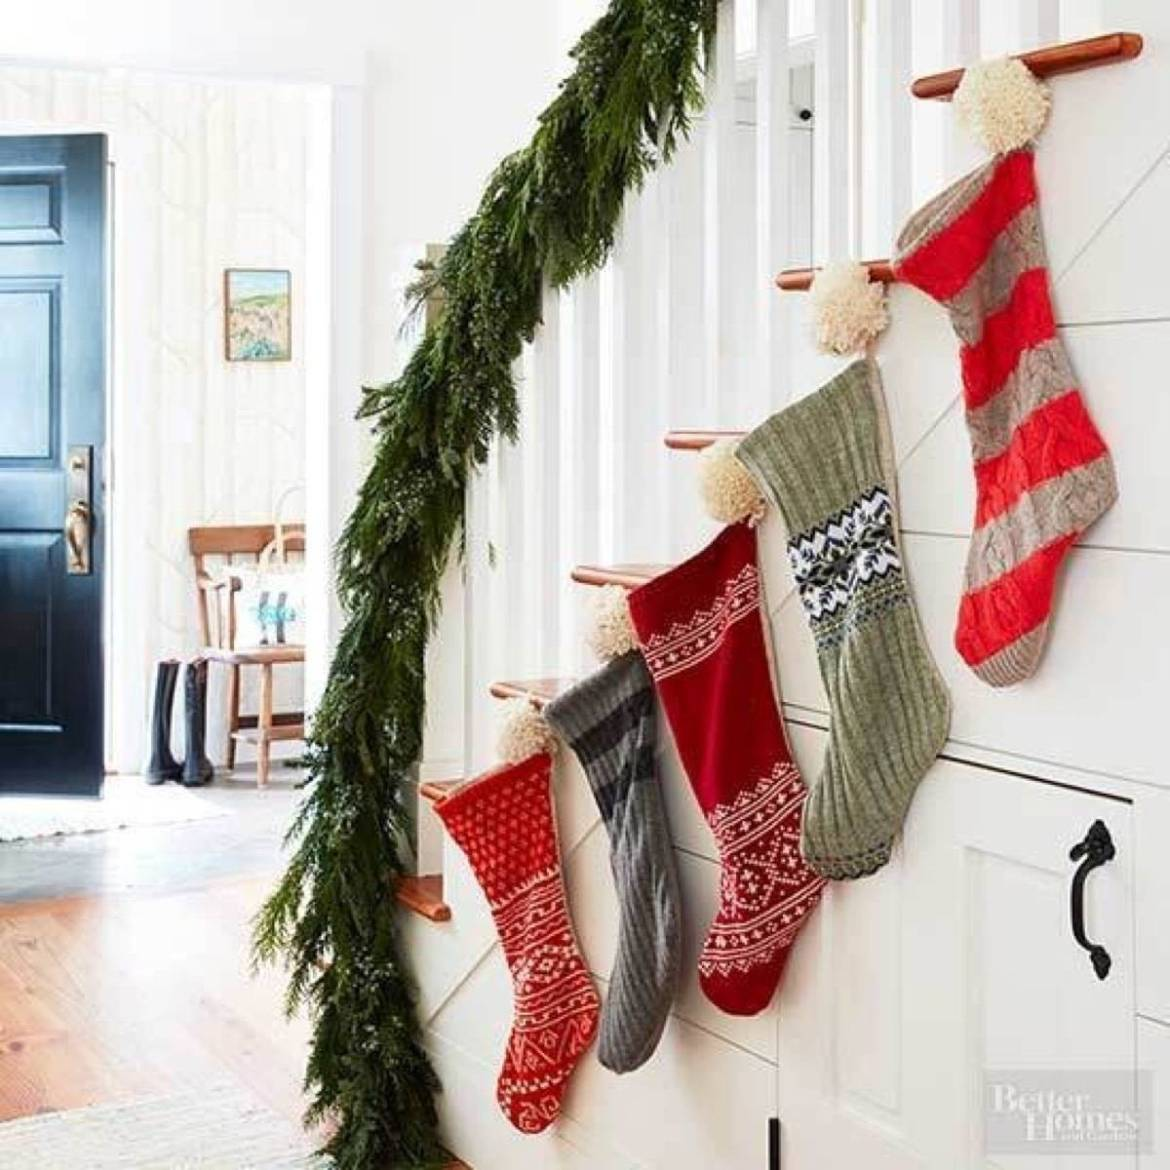 Christmas stockings on a stairwell